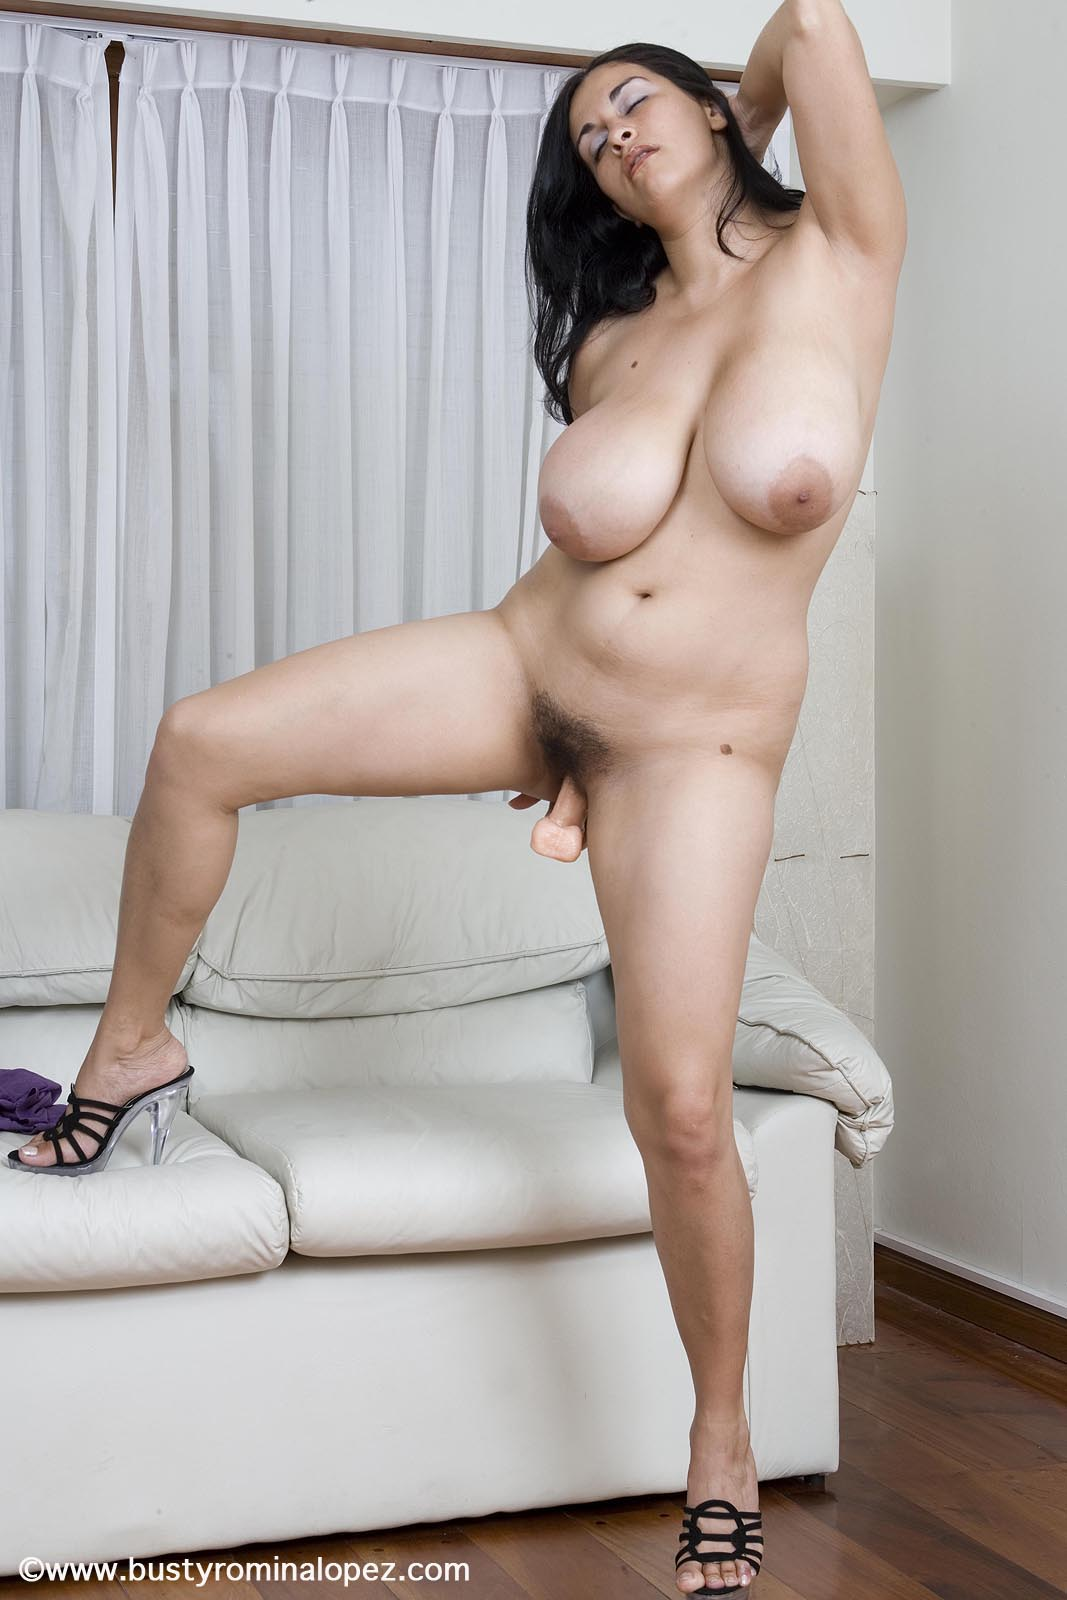 my site has a tons of hq pictures and hd videos of me and my busty